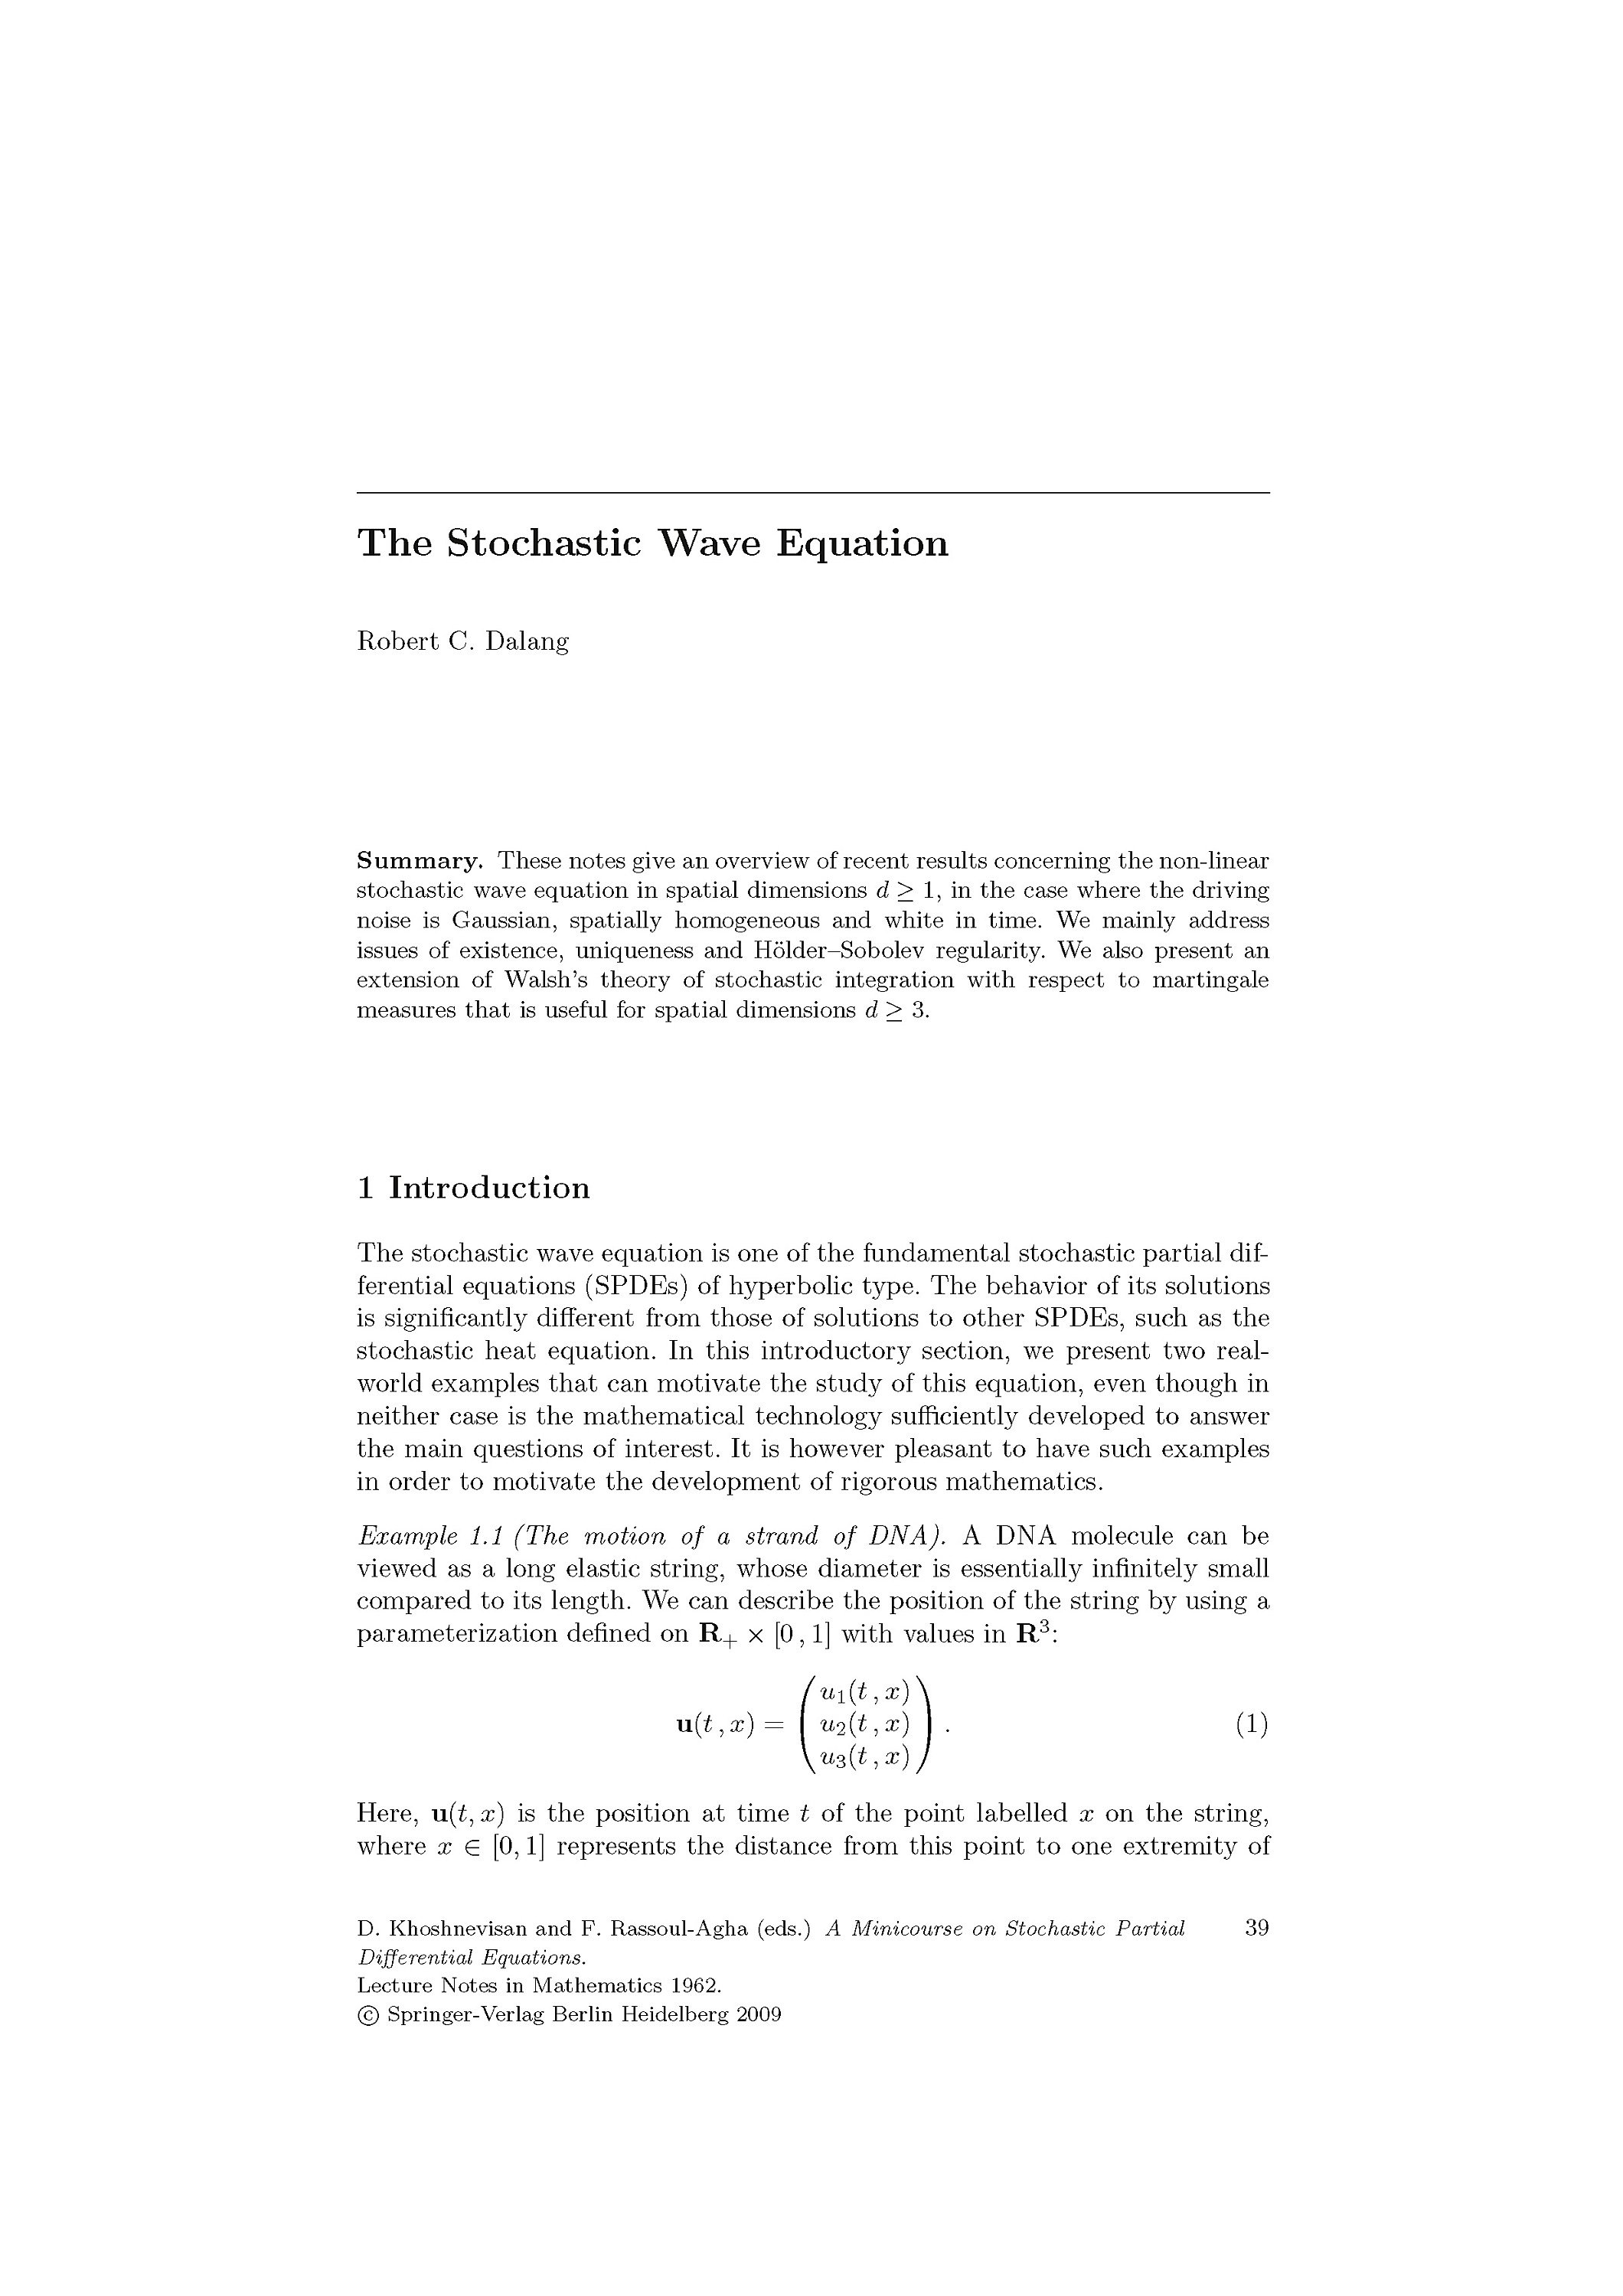 A Minicourse on Stochastic Partial Differential Equations Buch